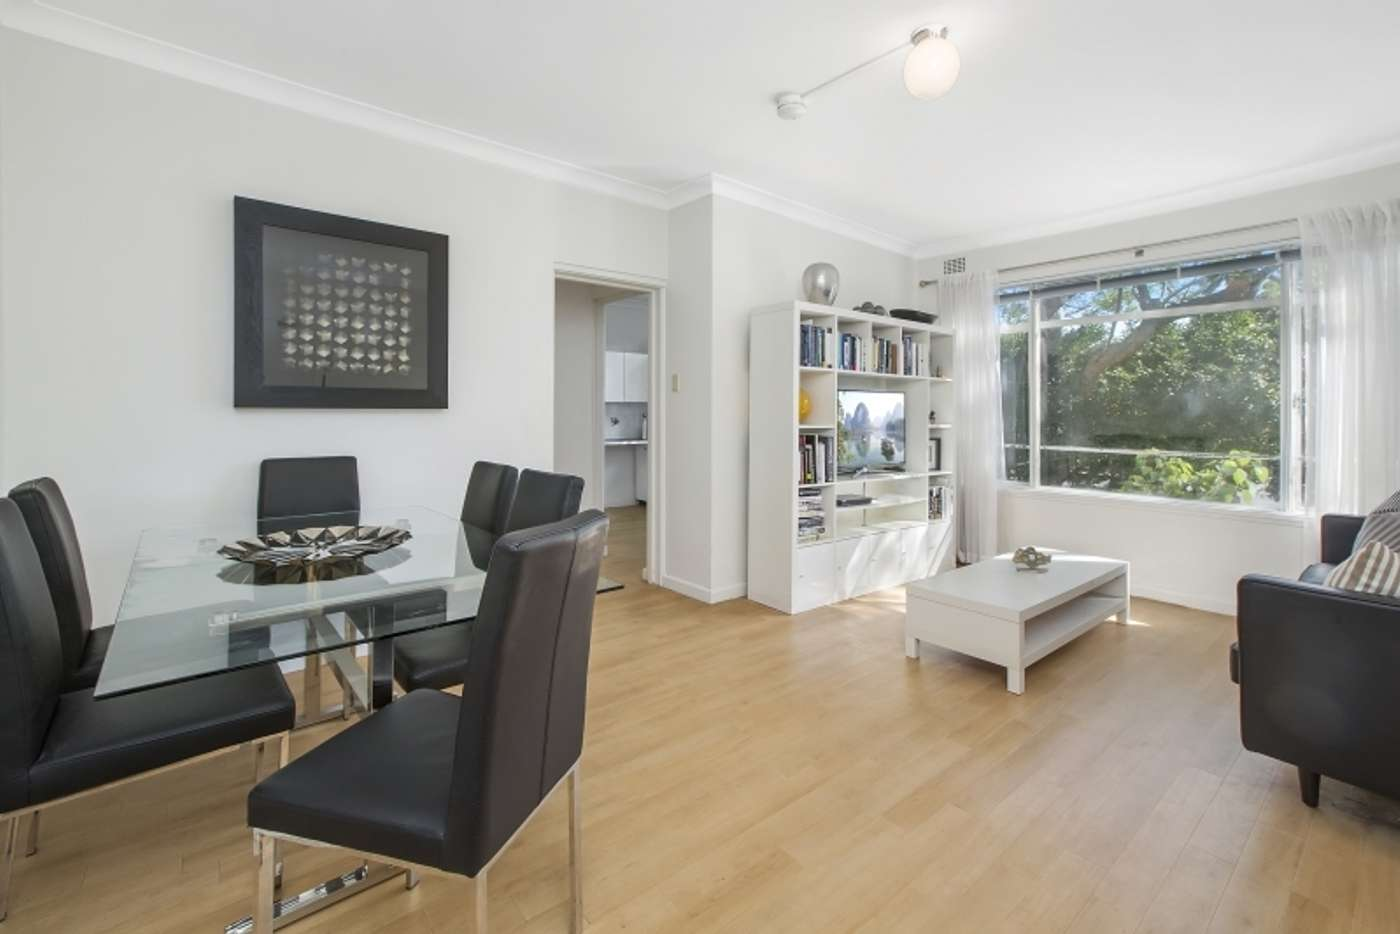 Main view of Homely apartment listing, 7/55 Pacific Highway, Roseville NSW 2069